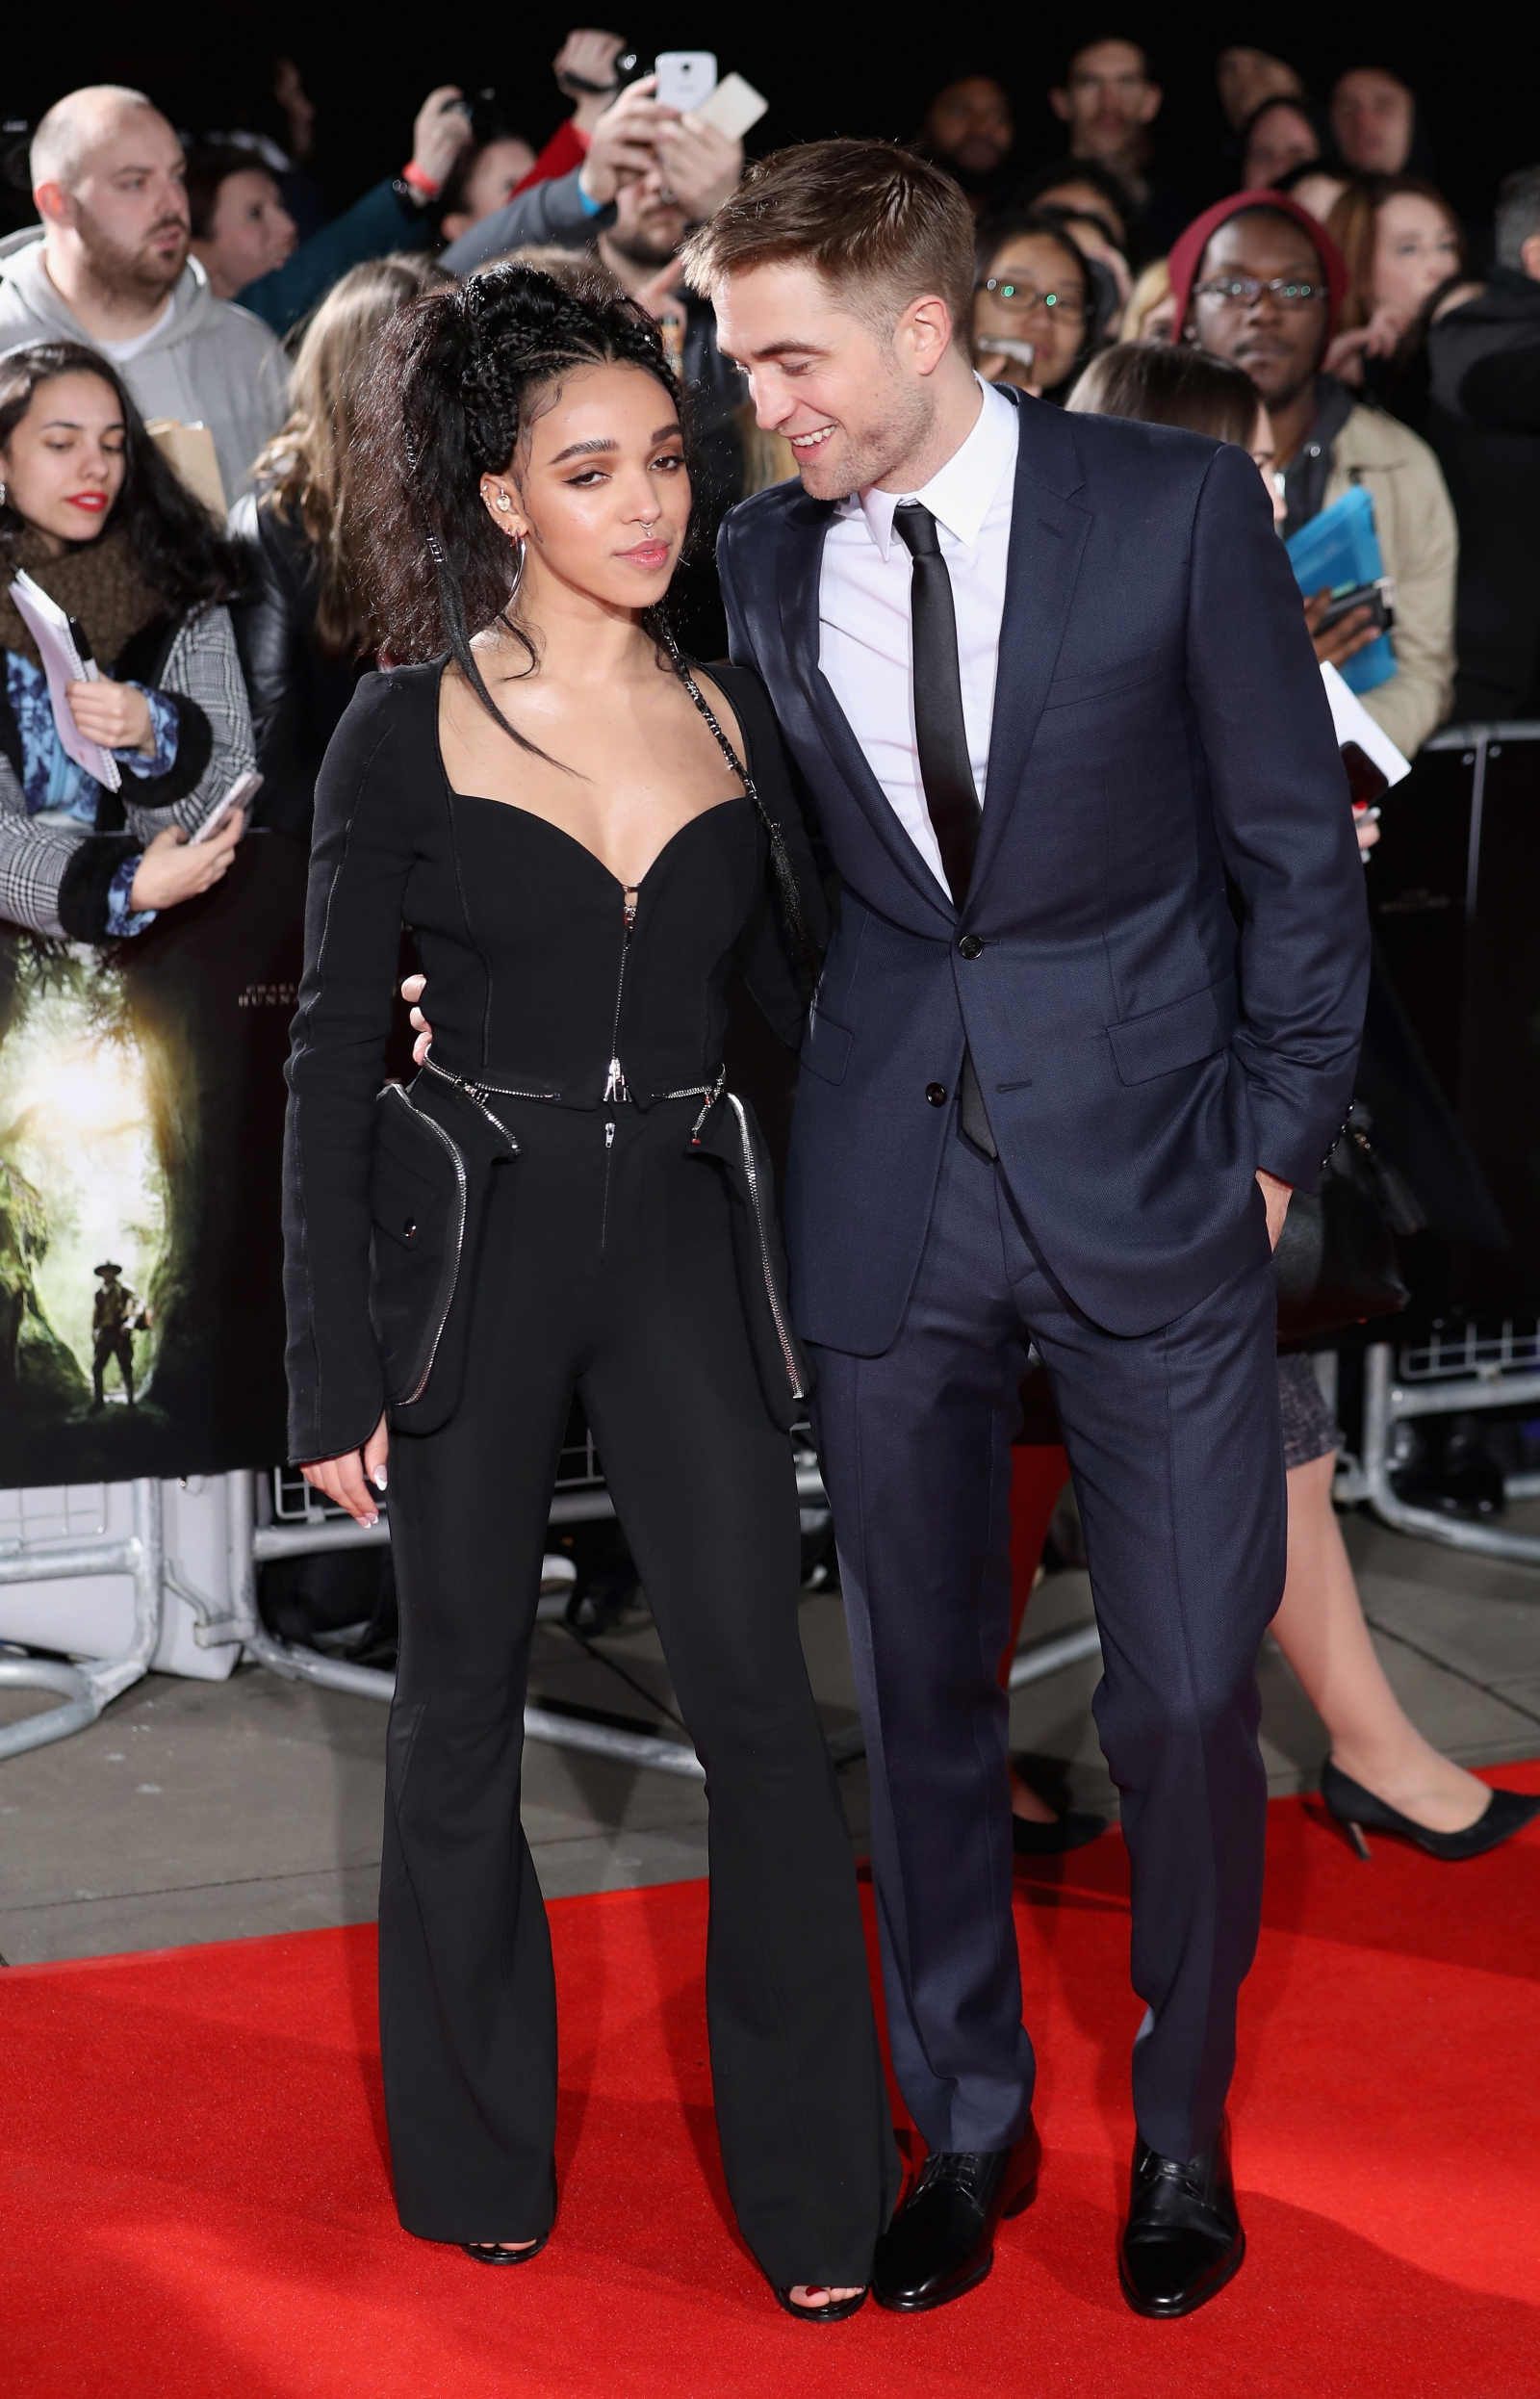 Fka twigs robert pattinson dating co star 2